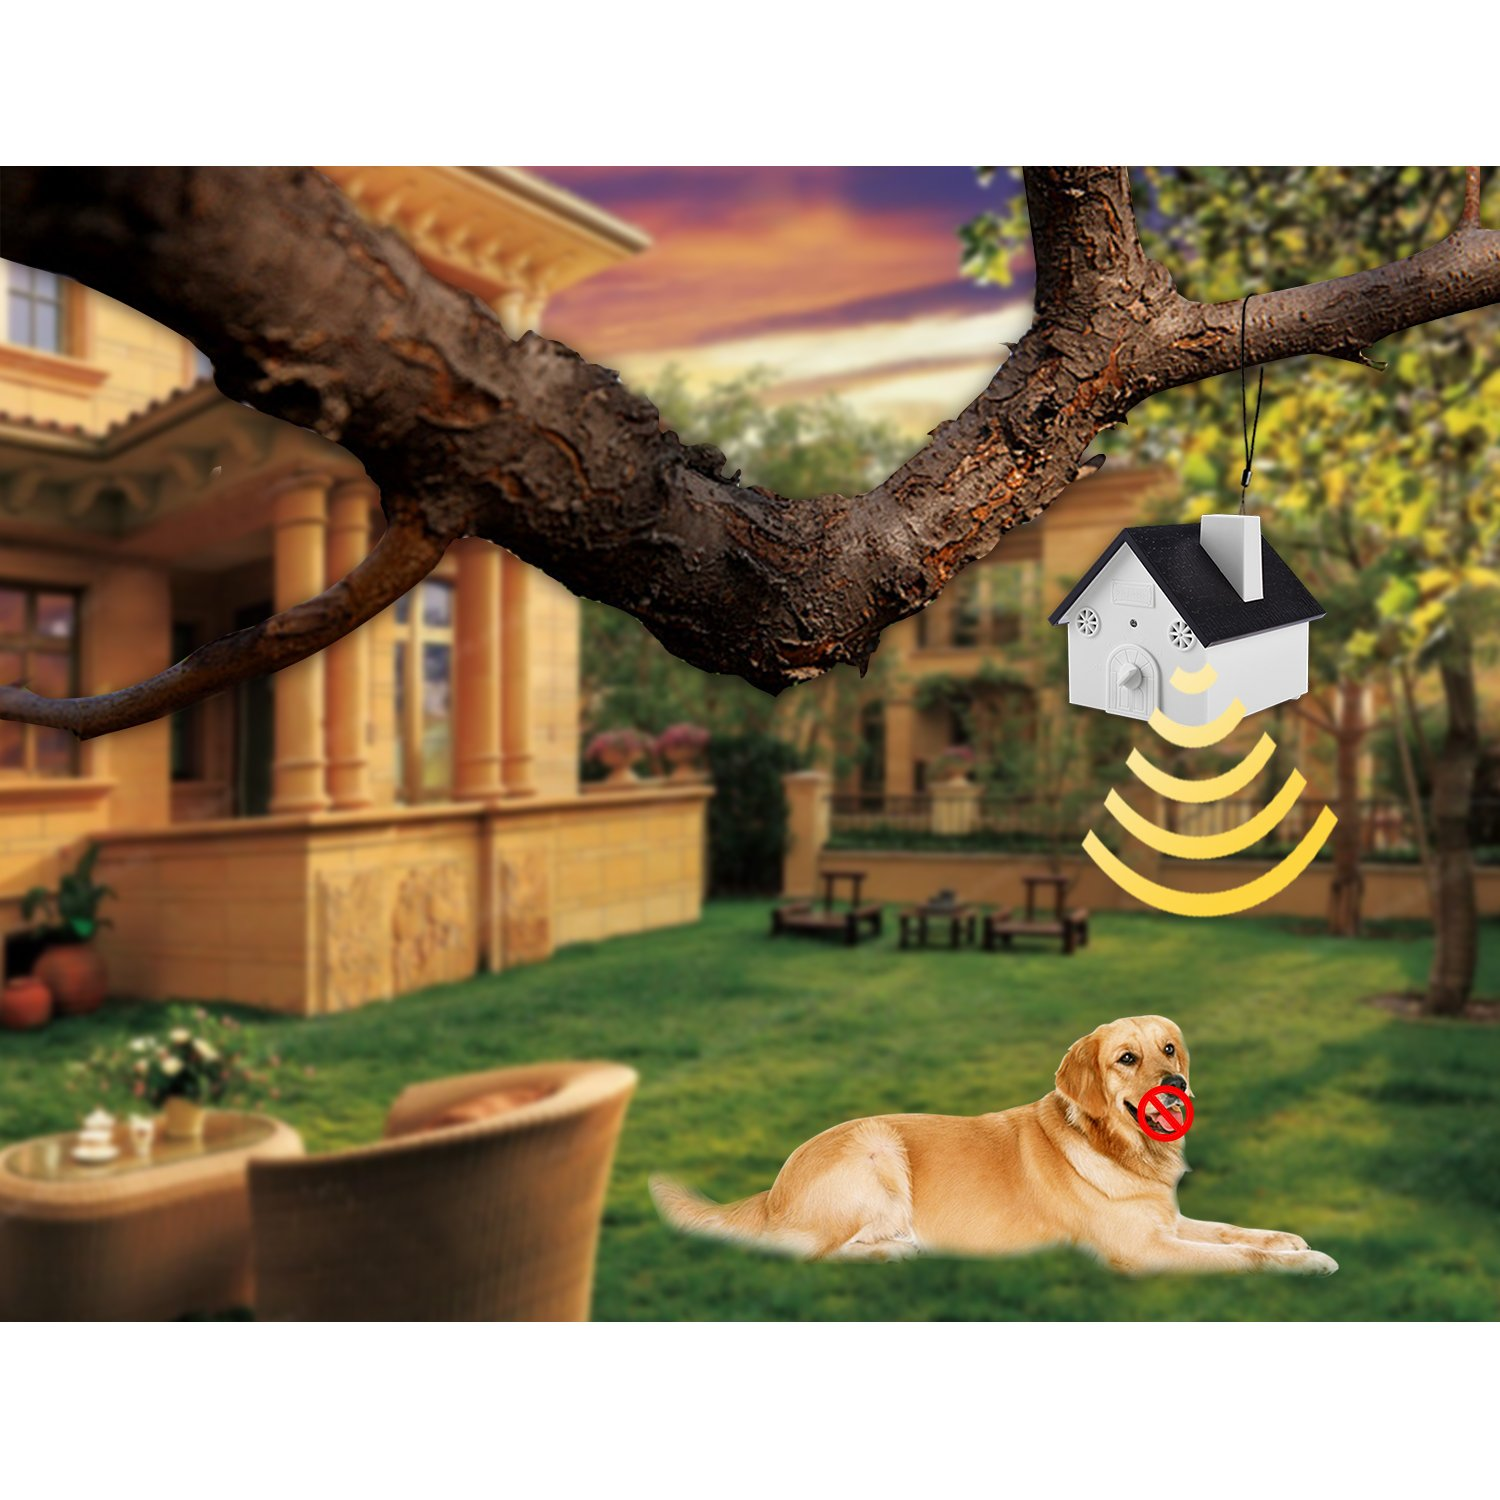 Smarlance Ultrasonic Outdoor Bark Controller No Harm to Dogs Or Other Pets, Plant, Human,Easy Hanging Bird House Designed with Anti Barking Device Ultrasonic Training Dog Stop Barking by Smarlance (Image #2)